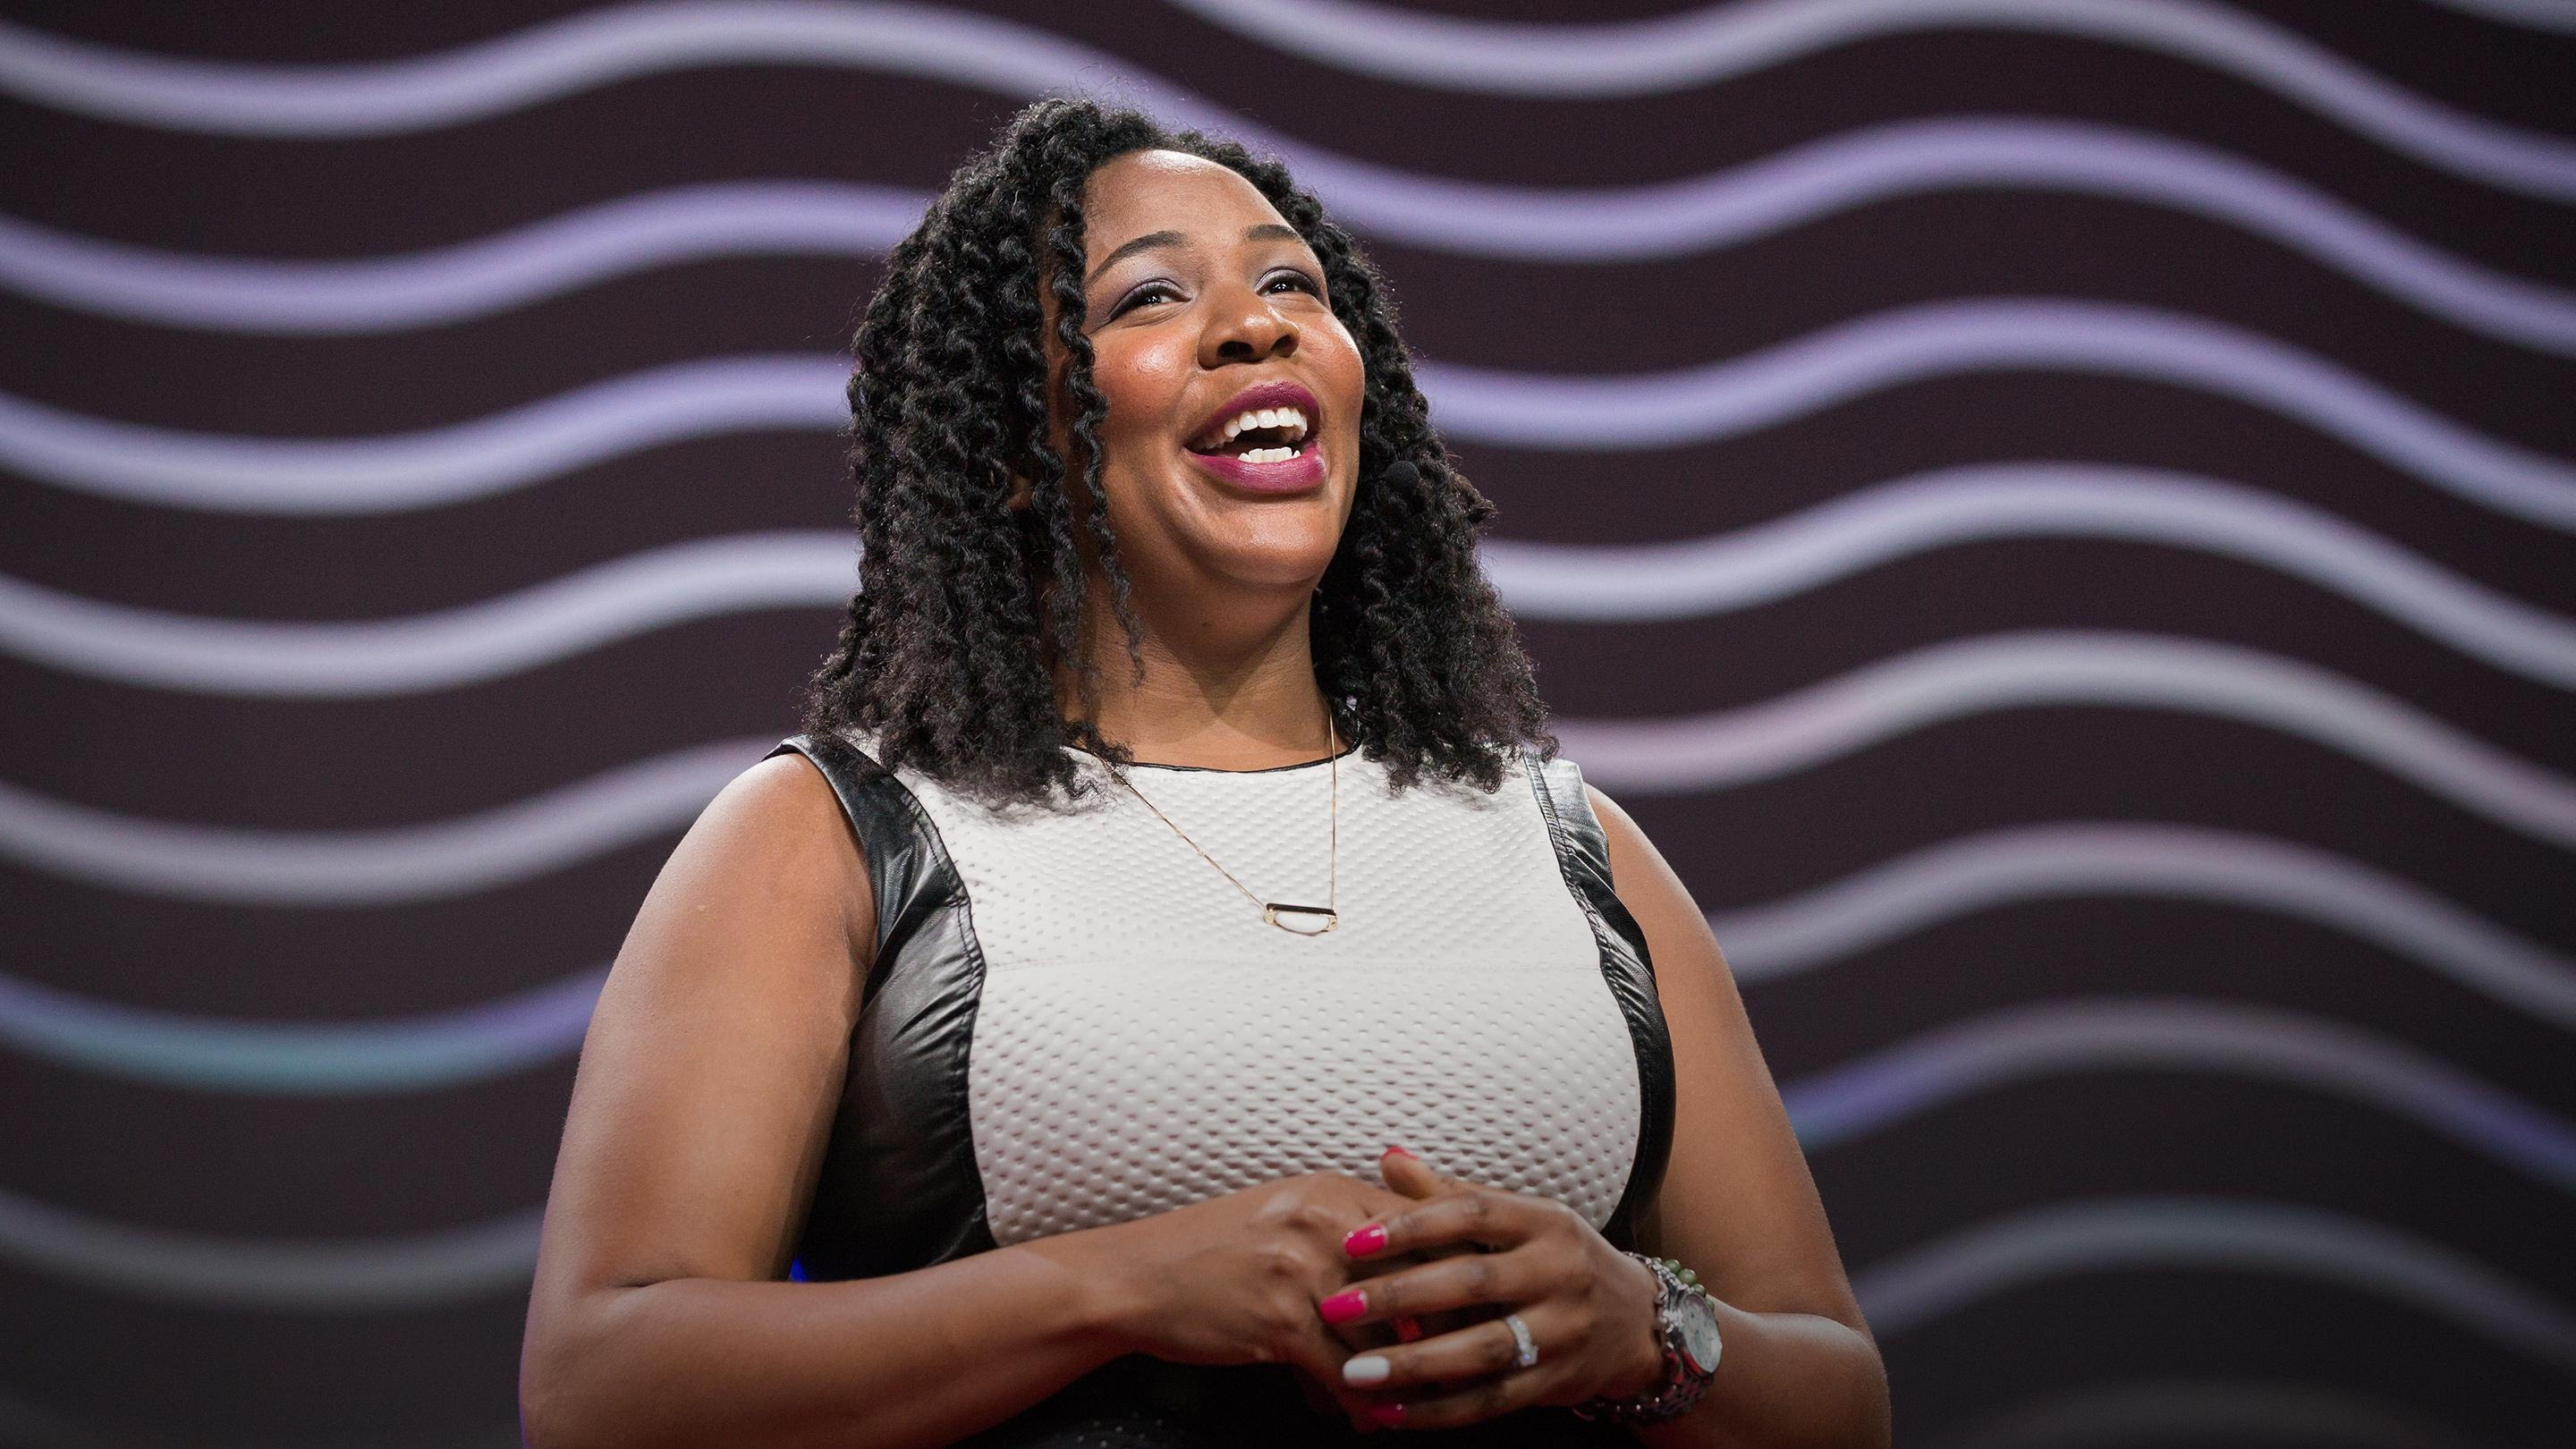 「Jedidah Isler:讓科學變更好的力量」- The Untapped Genius That Could Change Science for the Better